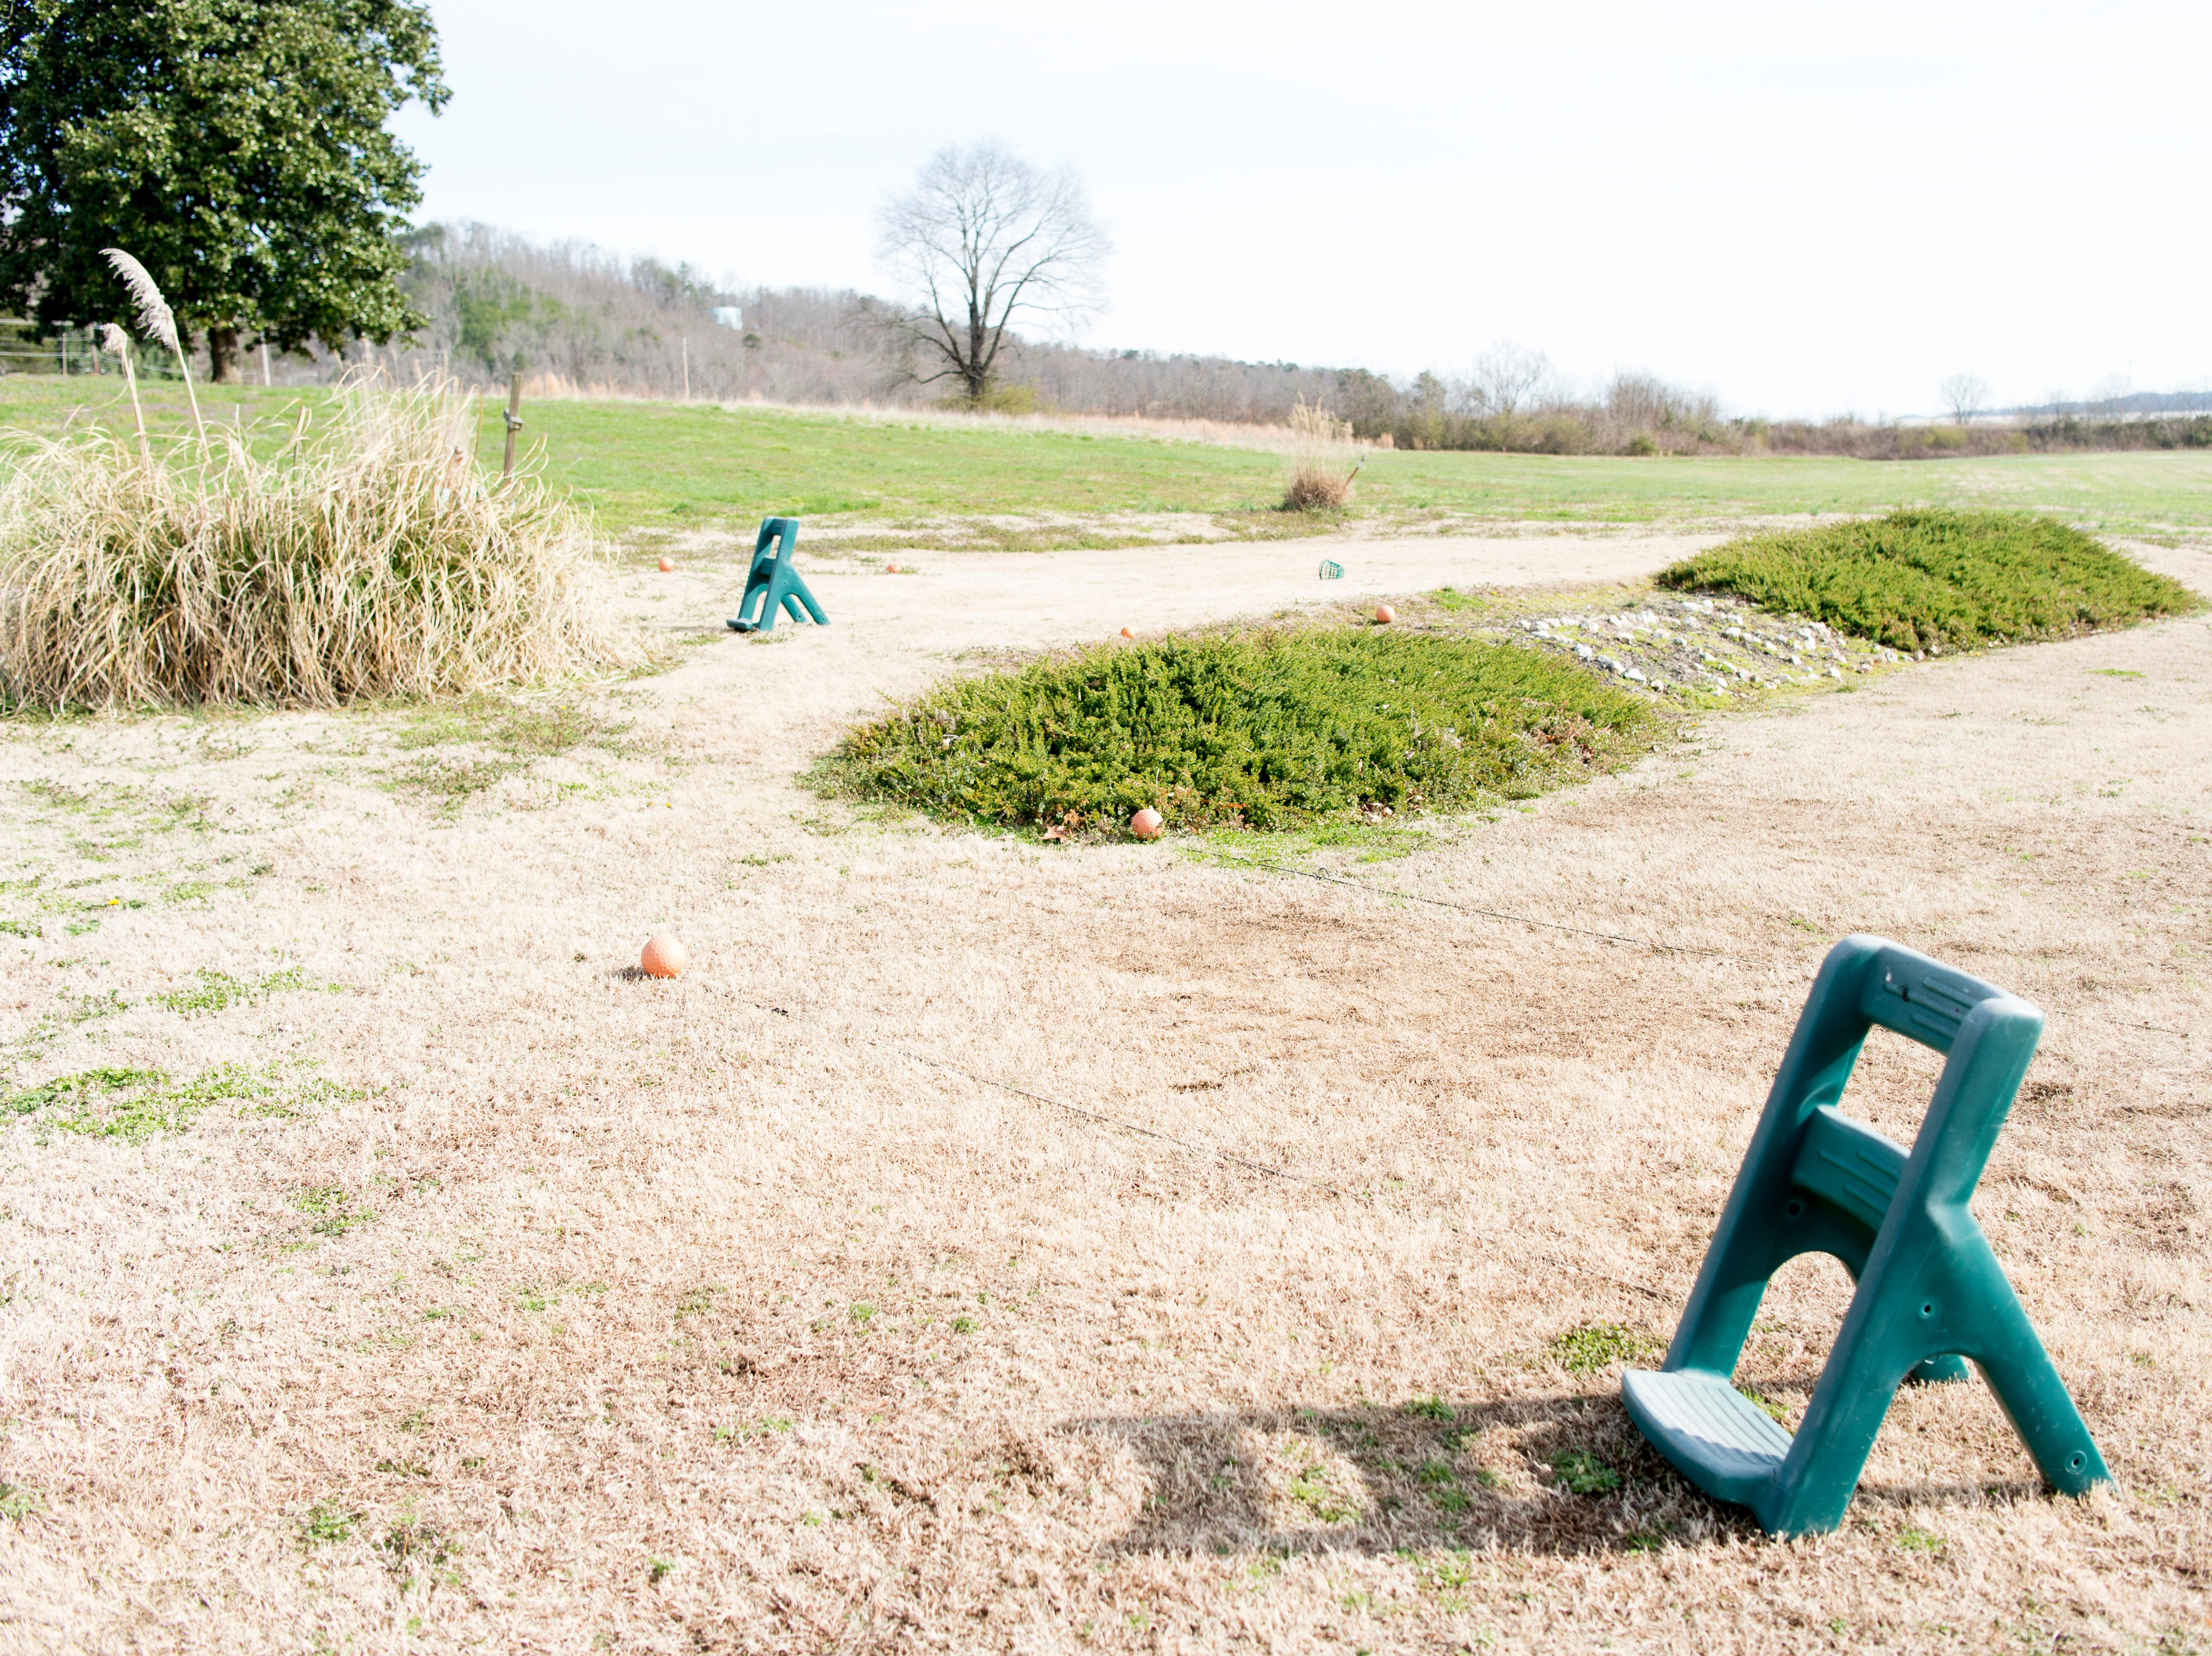 The Clinton Driving Range leases land on what will be the site of the future Aspire Park in Clinton, Tennessee on Tuesday, March 12, 2019. The Hollingsworth Foundation is looking to redevelop nearly 450 acres of land off Yarnell Road into a recreational park.